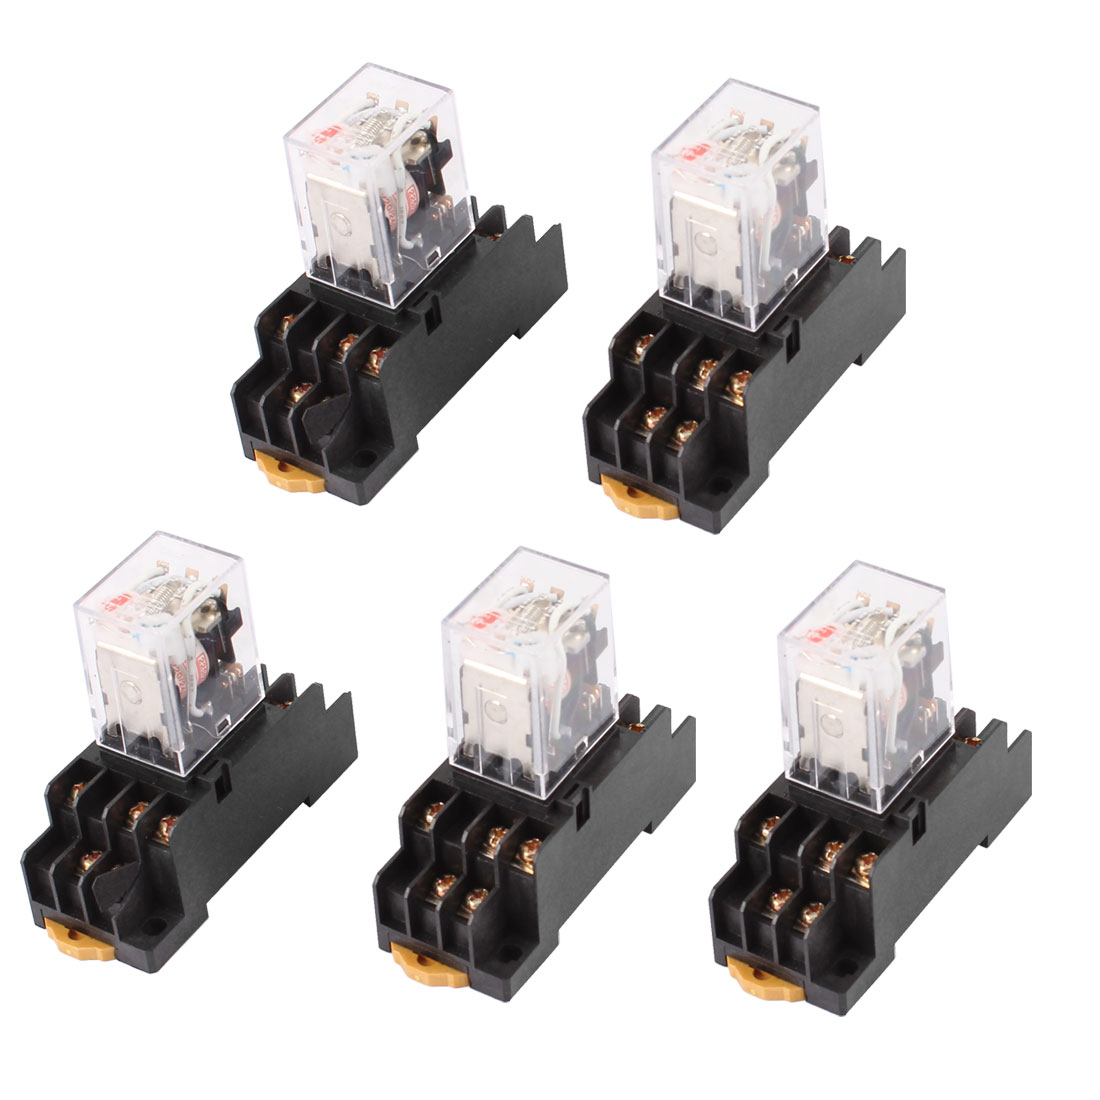 AC 220/240V Coil Red Indicator Lamp 3PDT 11 Pins Power Relay 5 Pcs + Socket Base